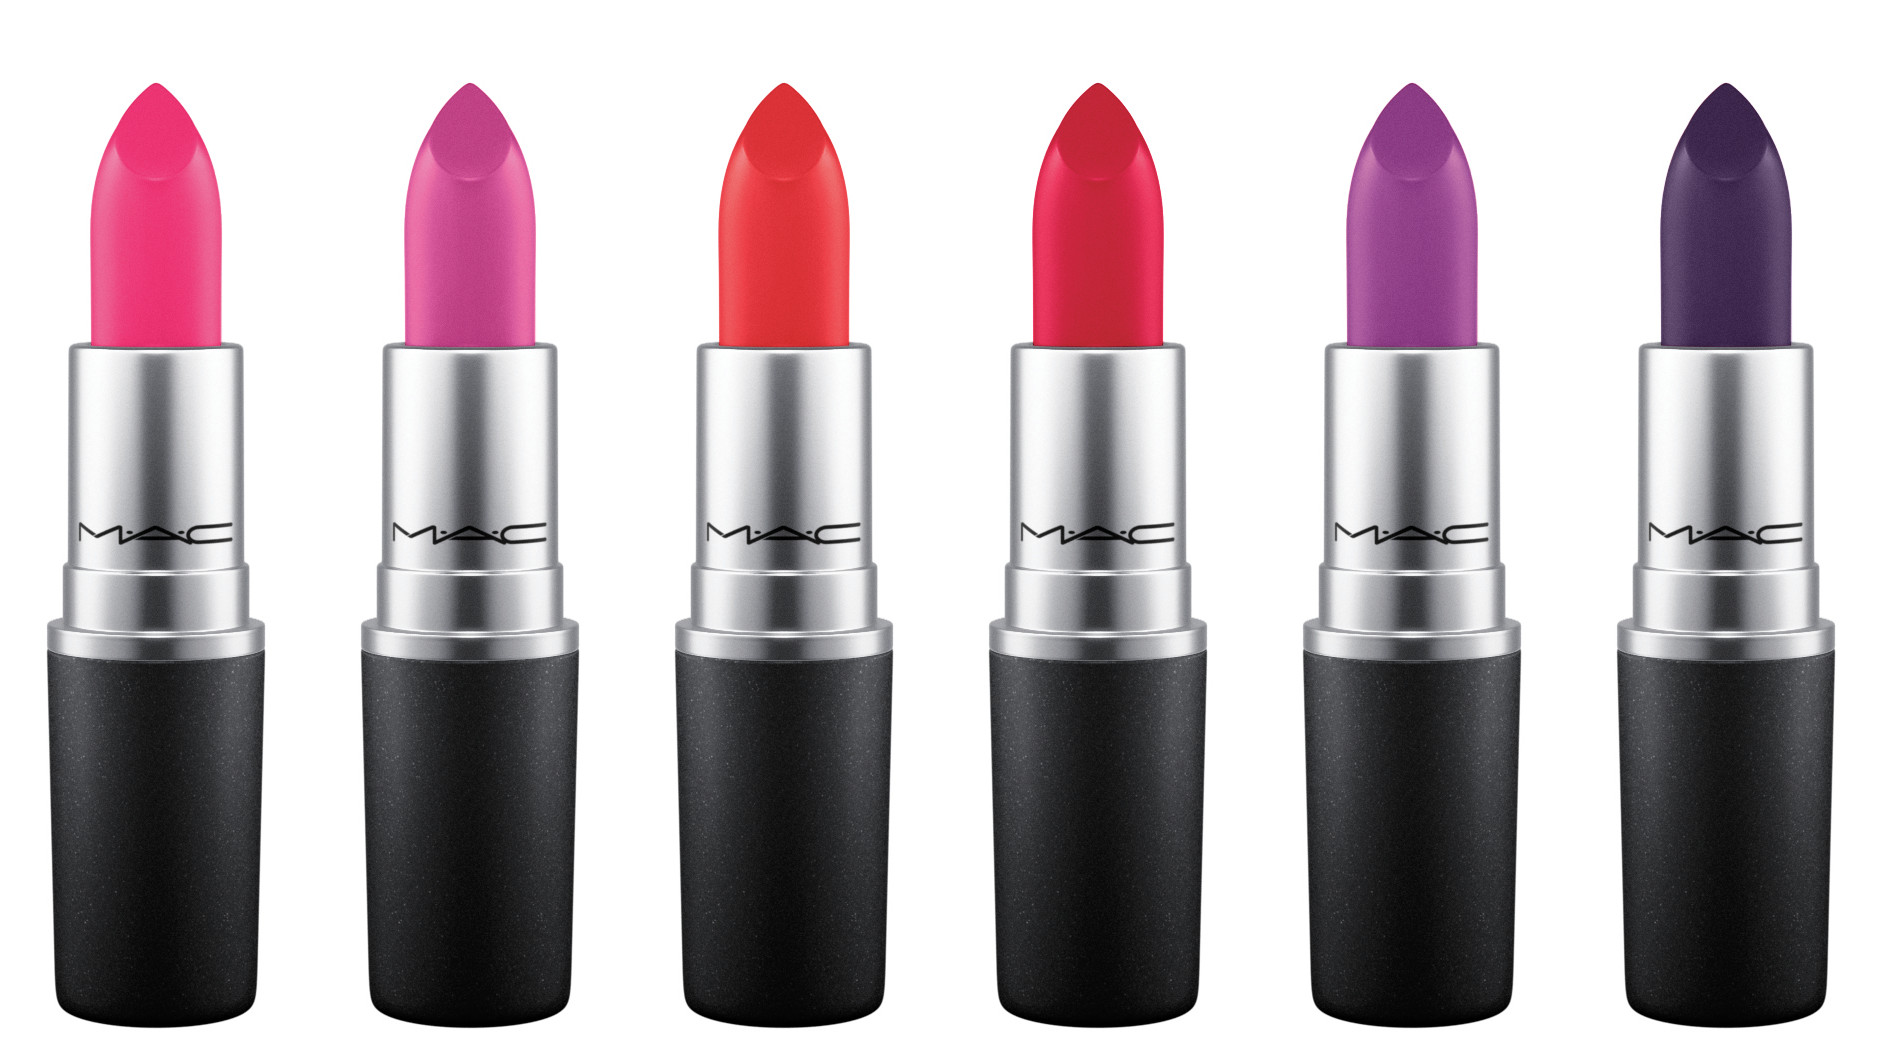 Mac Cosmetics Lipsticks